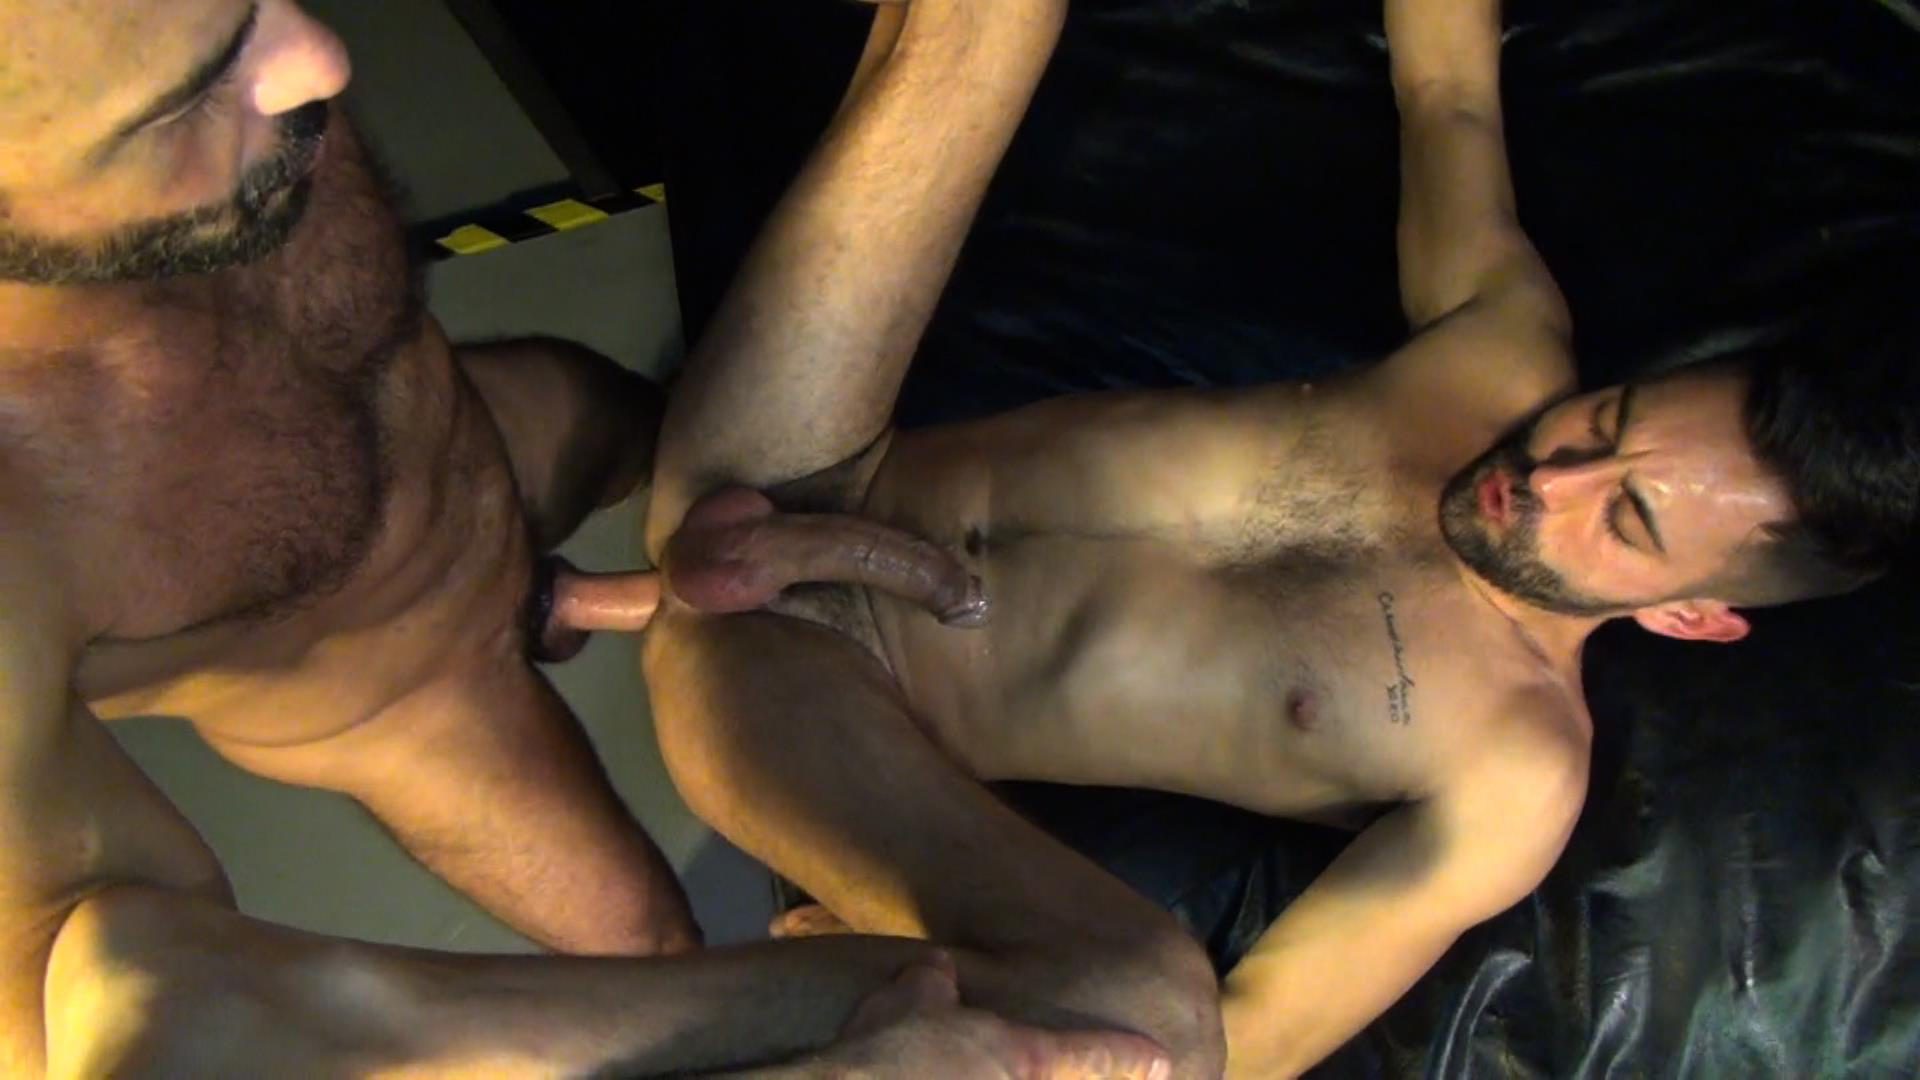 Raw Fuck Club Blue Bailey and Dylan Strokes and Adam Russo and Dean Brody and Jay Brix Bareback Orgy Amateur Gay Porn 3 Adam Russo Getting Double Penetrated At A Bareback Sex Party